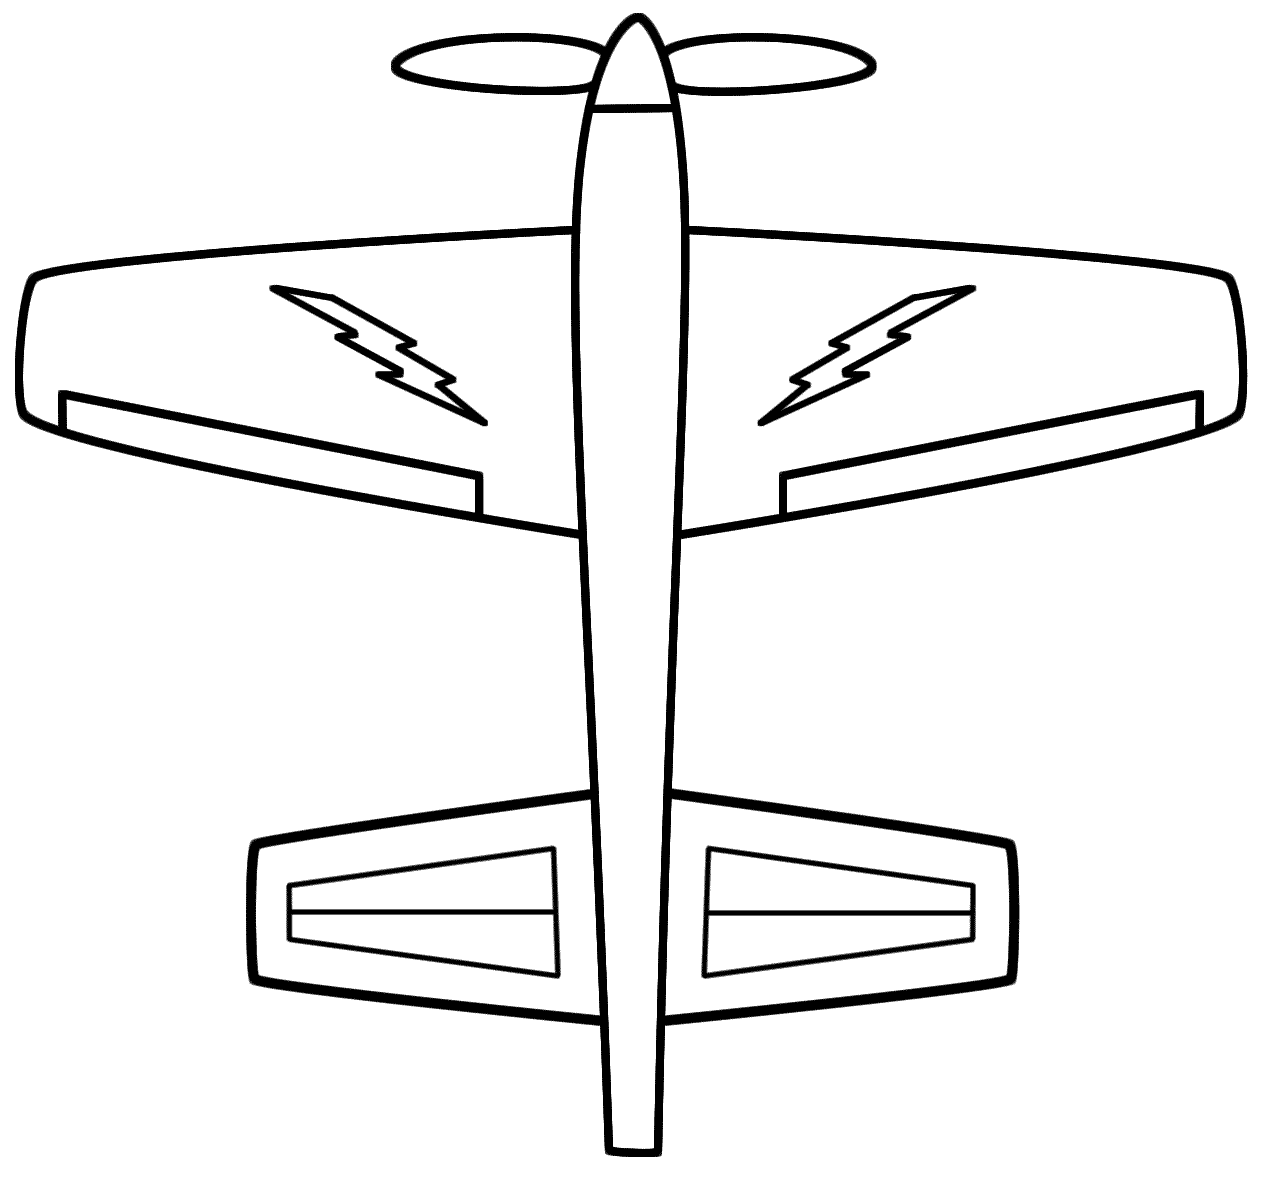 Adult Cute Lightning Bolt Coloring Page Images top educational coloring pages lightning bolts clipart best prop airplane page electric colouring images